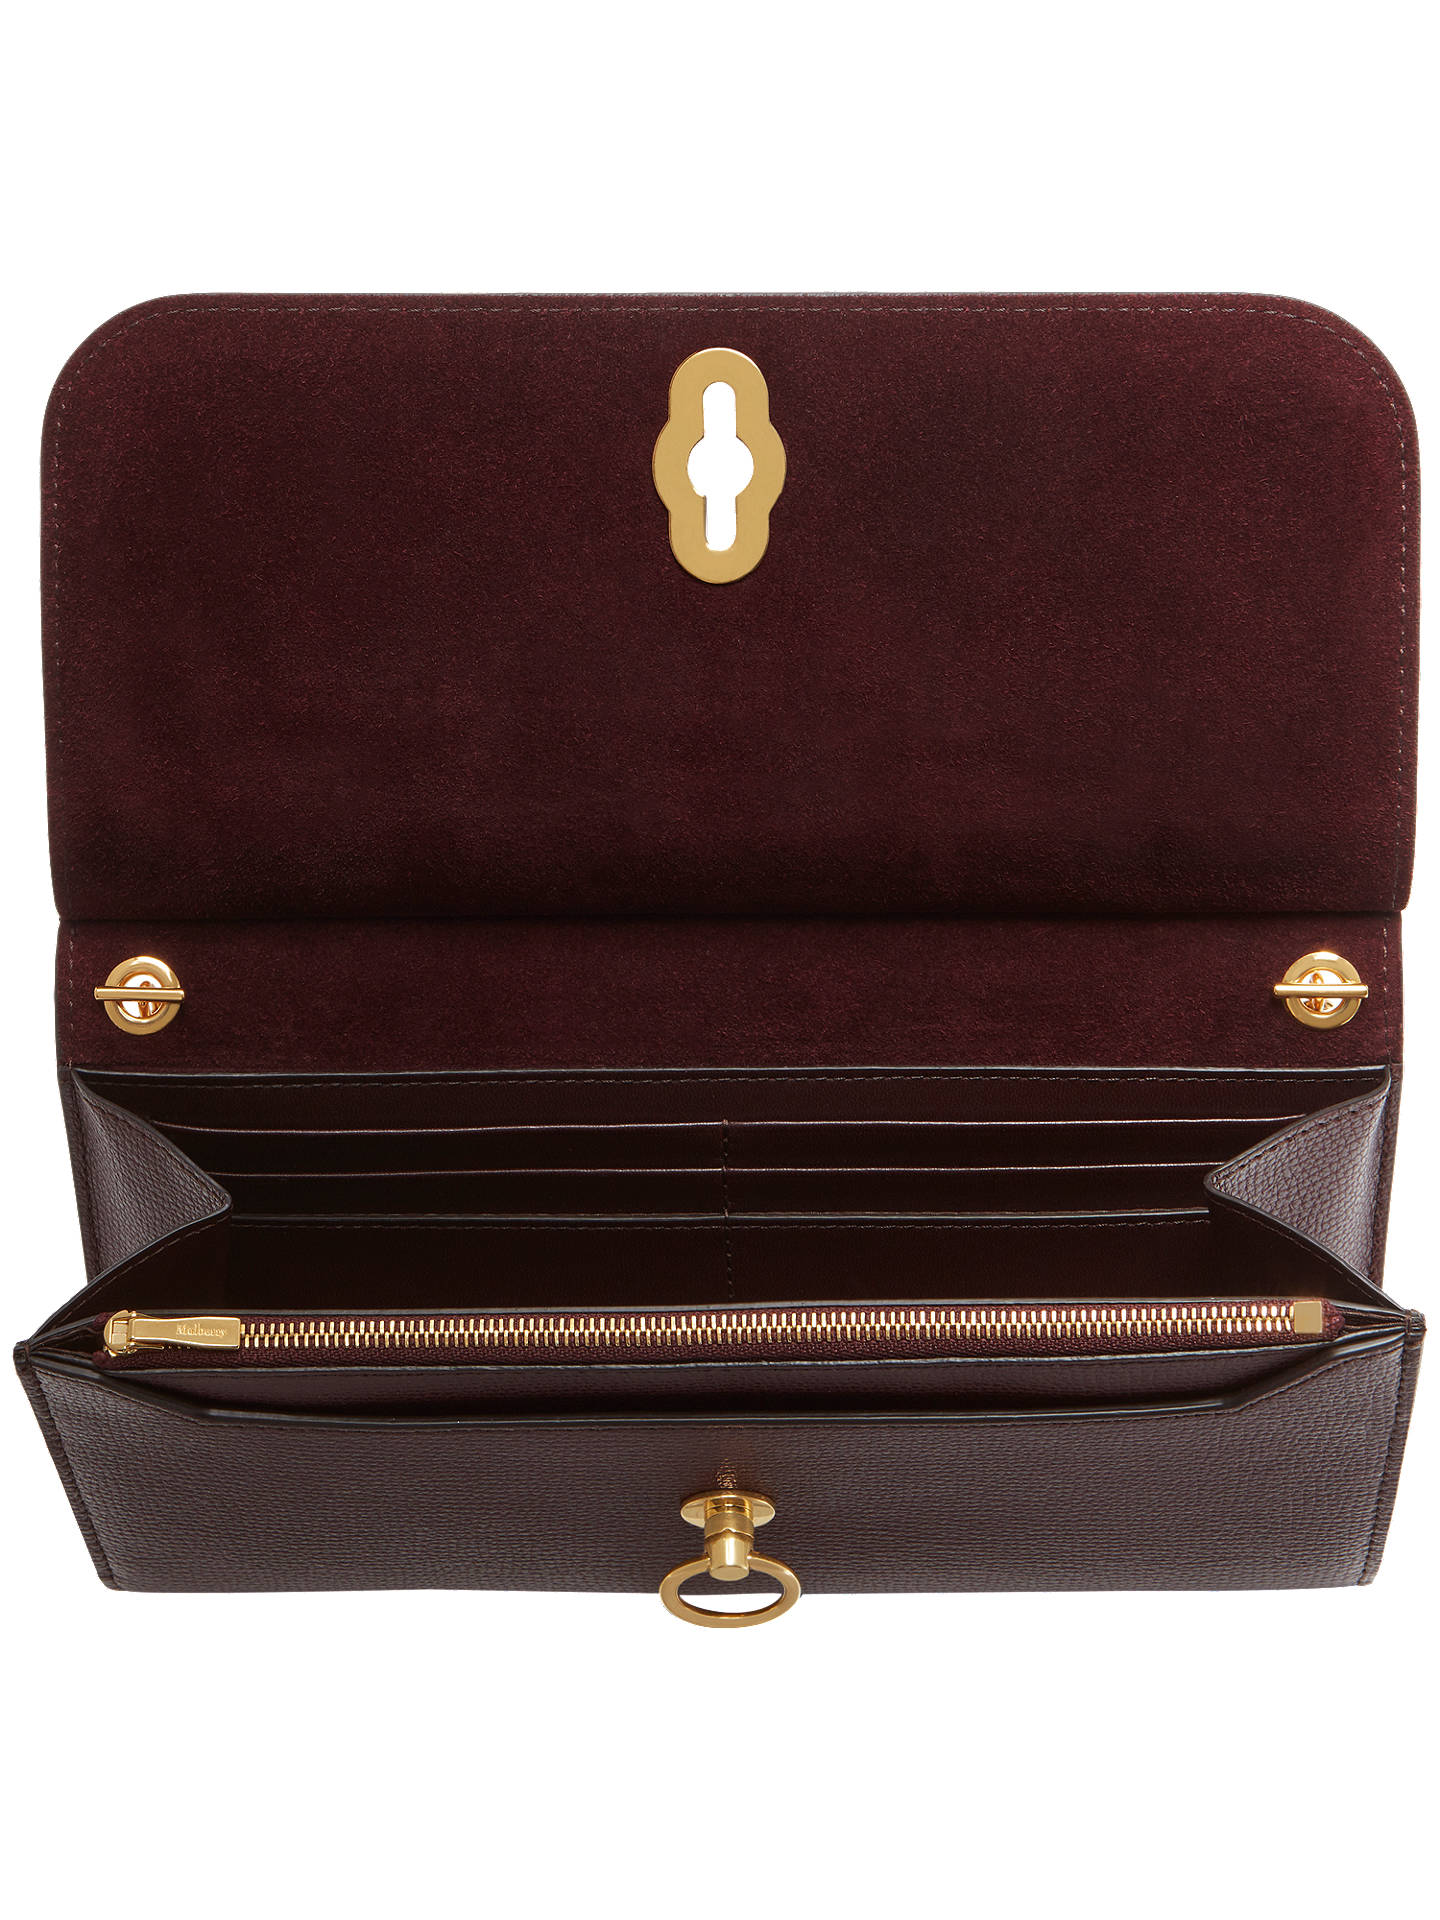 93508f5ea232 Mulberry Amberley Cross Grain Leather Clutch Bag at John Lewis ...